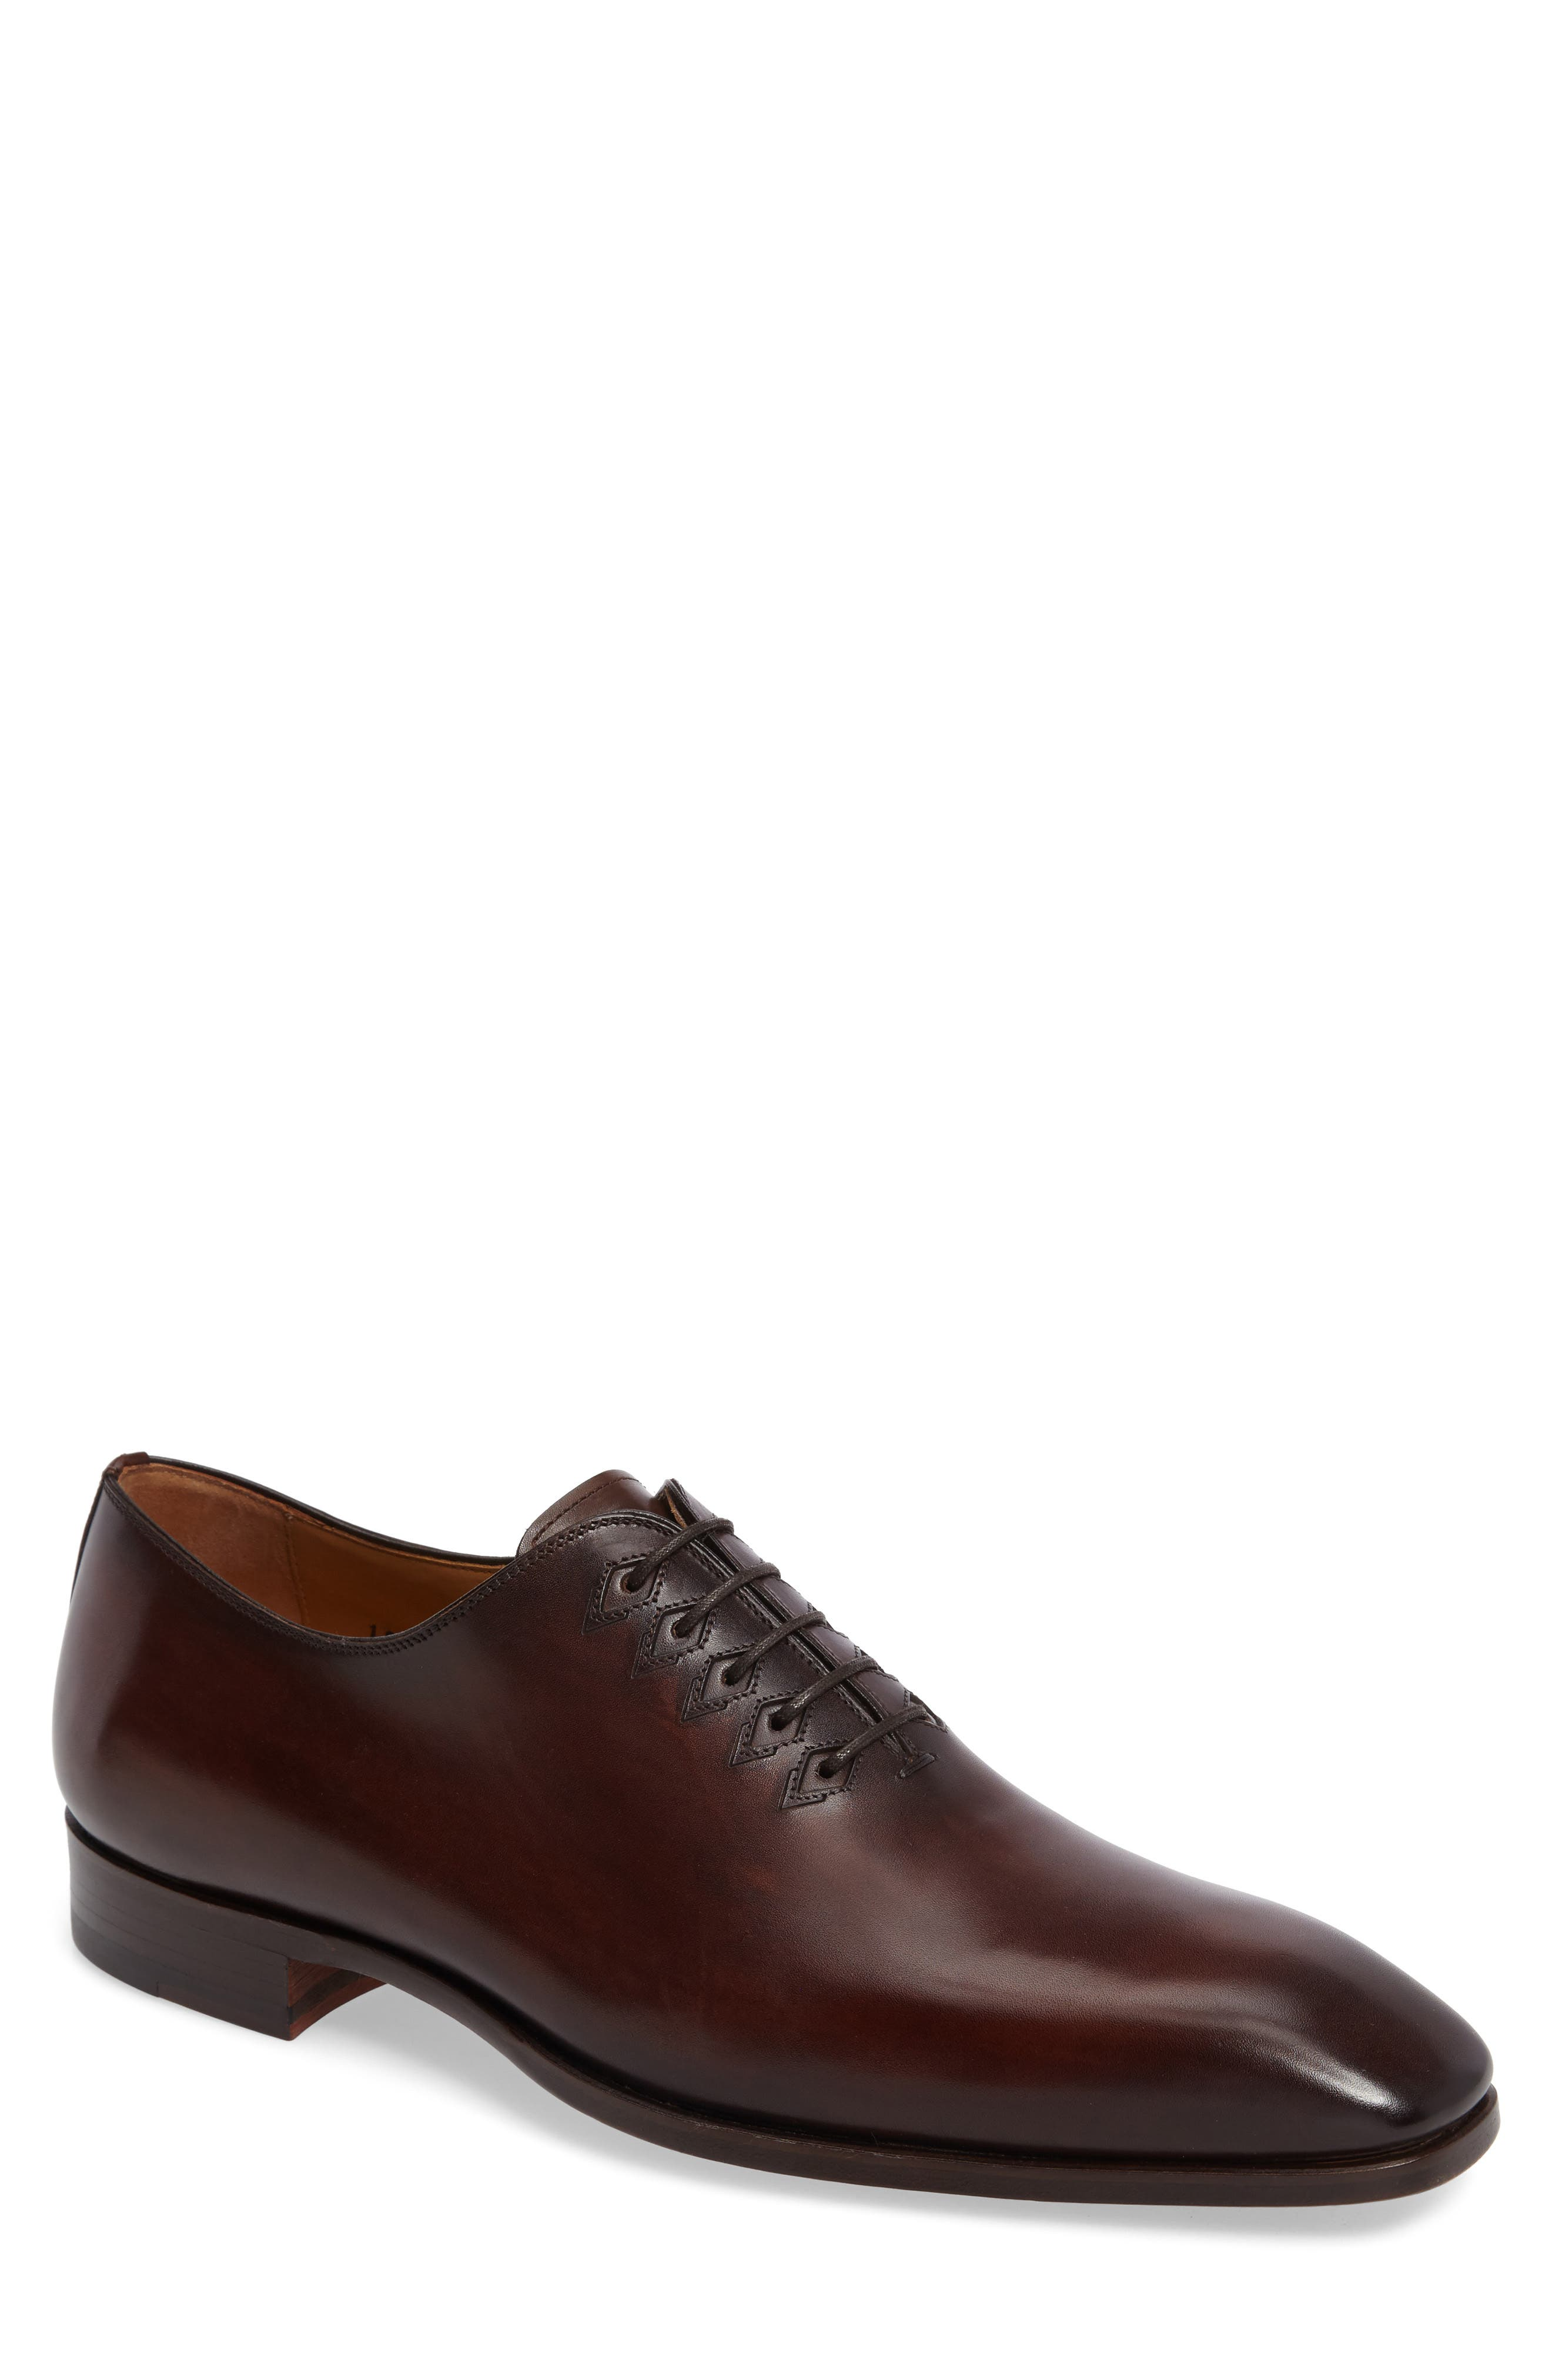 Alternate Image 1 Selected - Magnanni Rioja Wholecut Oxford (Men)